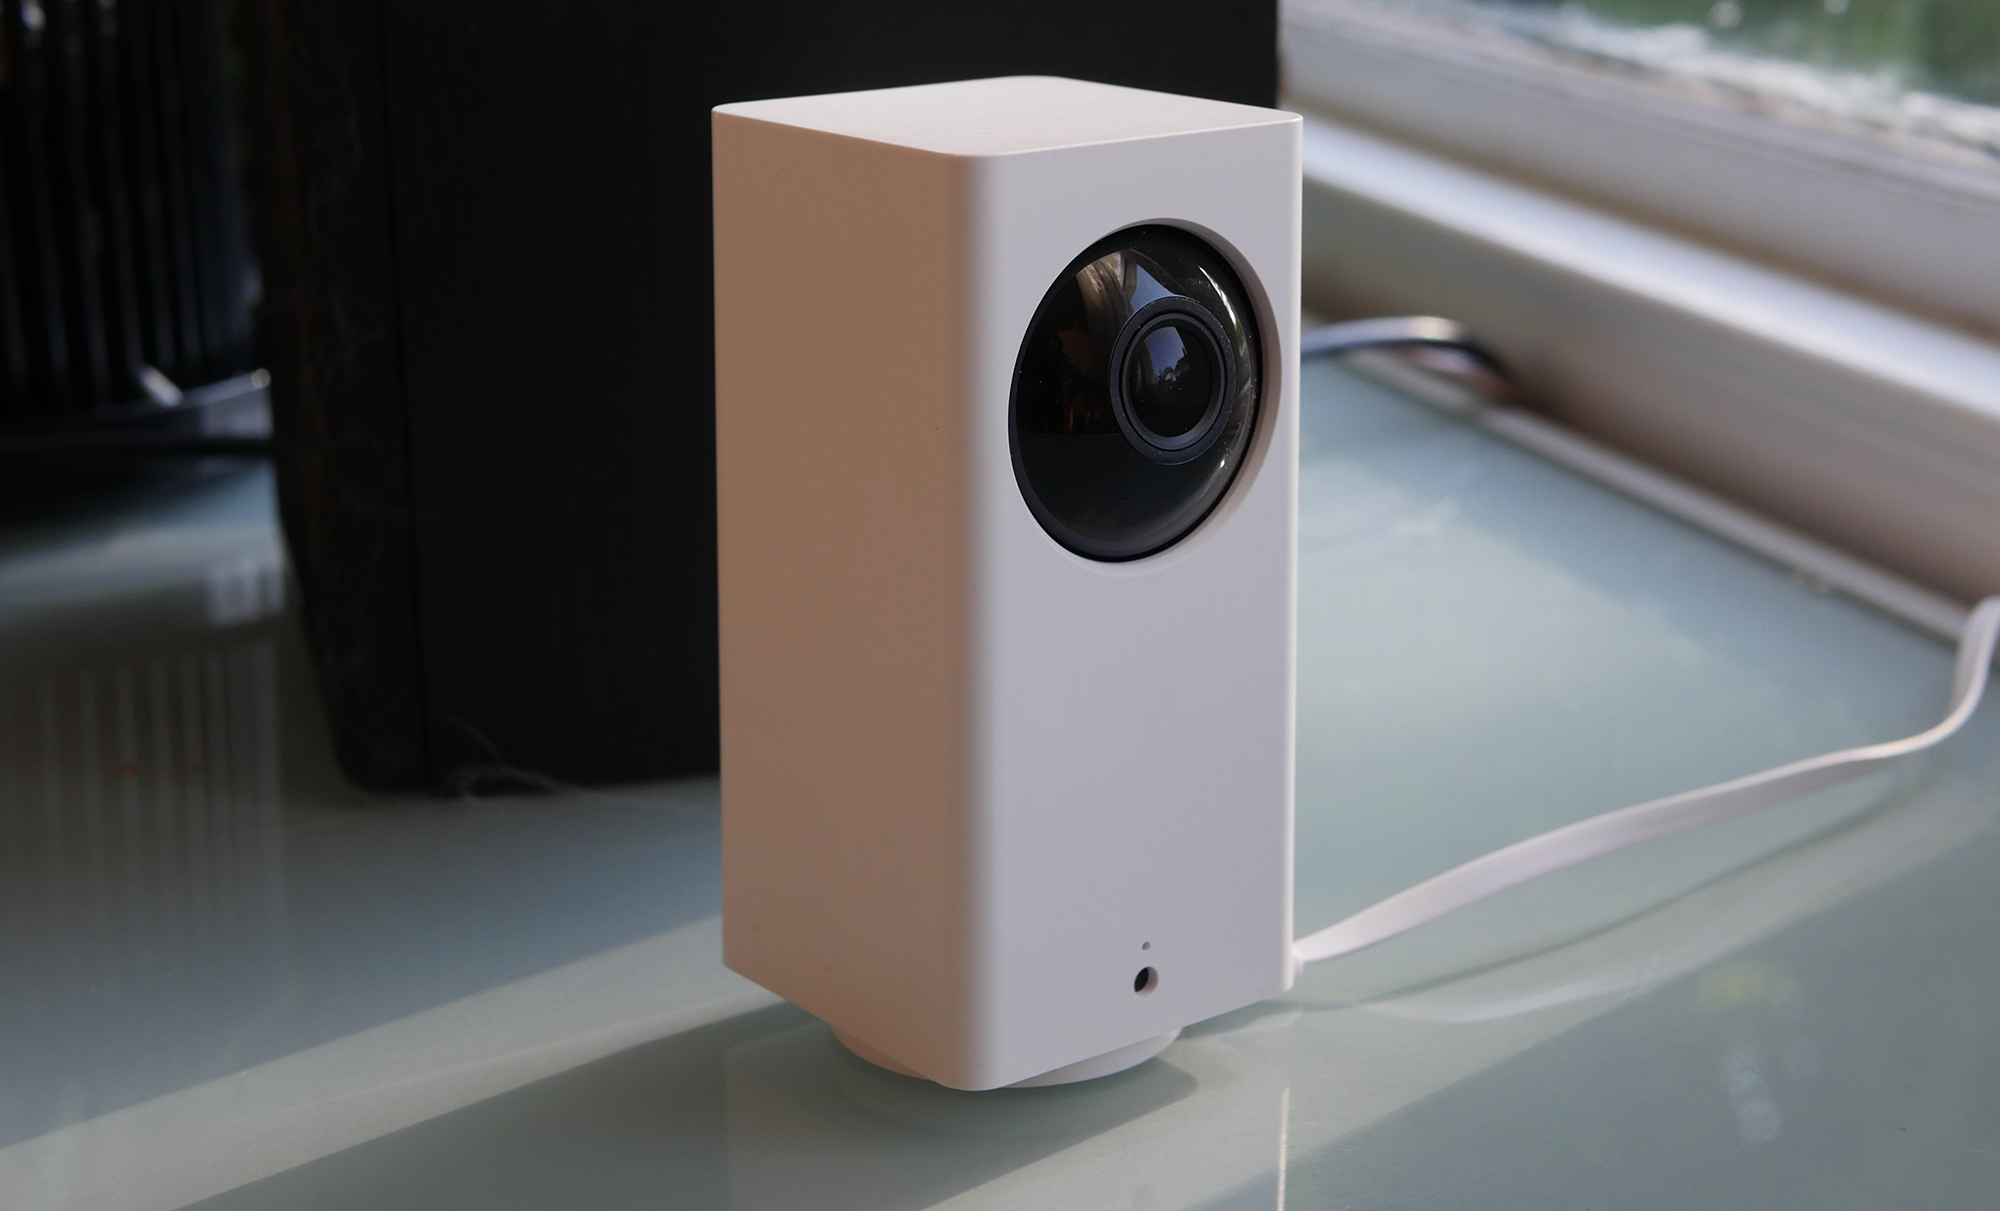 Wyze is testing a paid service for longer videos in the cloud